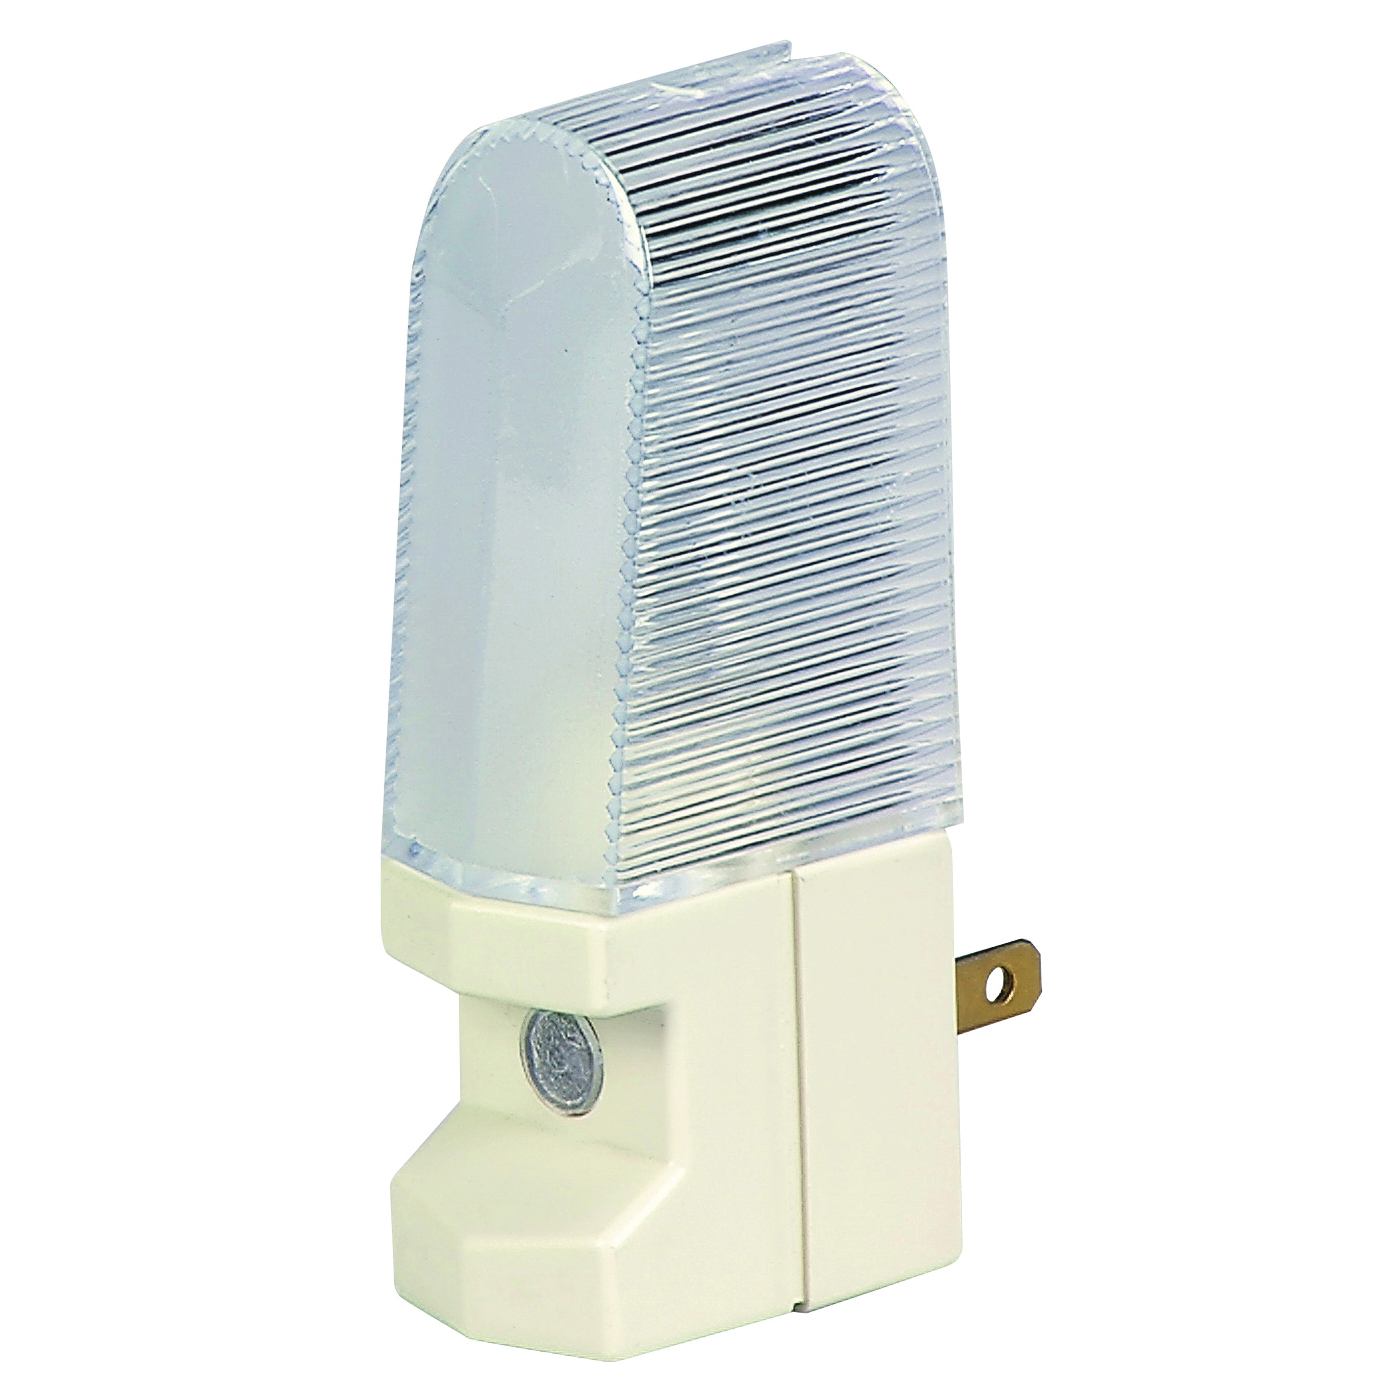 Picture of Eaton Wiring Devices BP851BGE Nightlight, 15 A, 125 V, 4 W, Incandescent Lamp, Beige Light